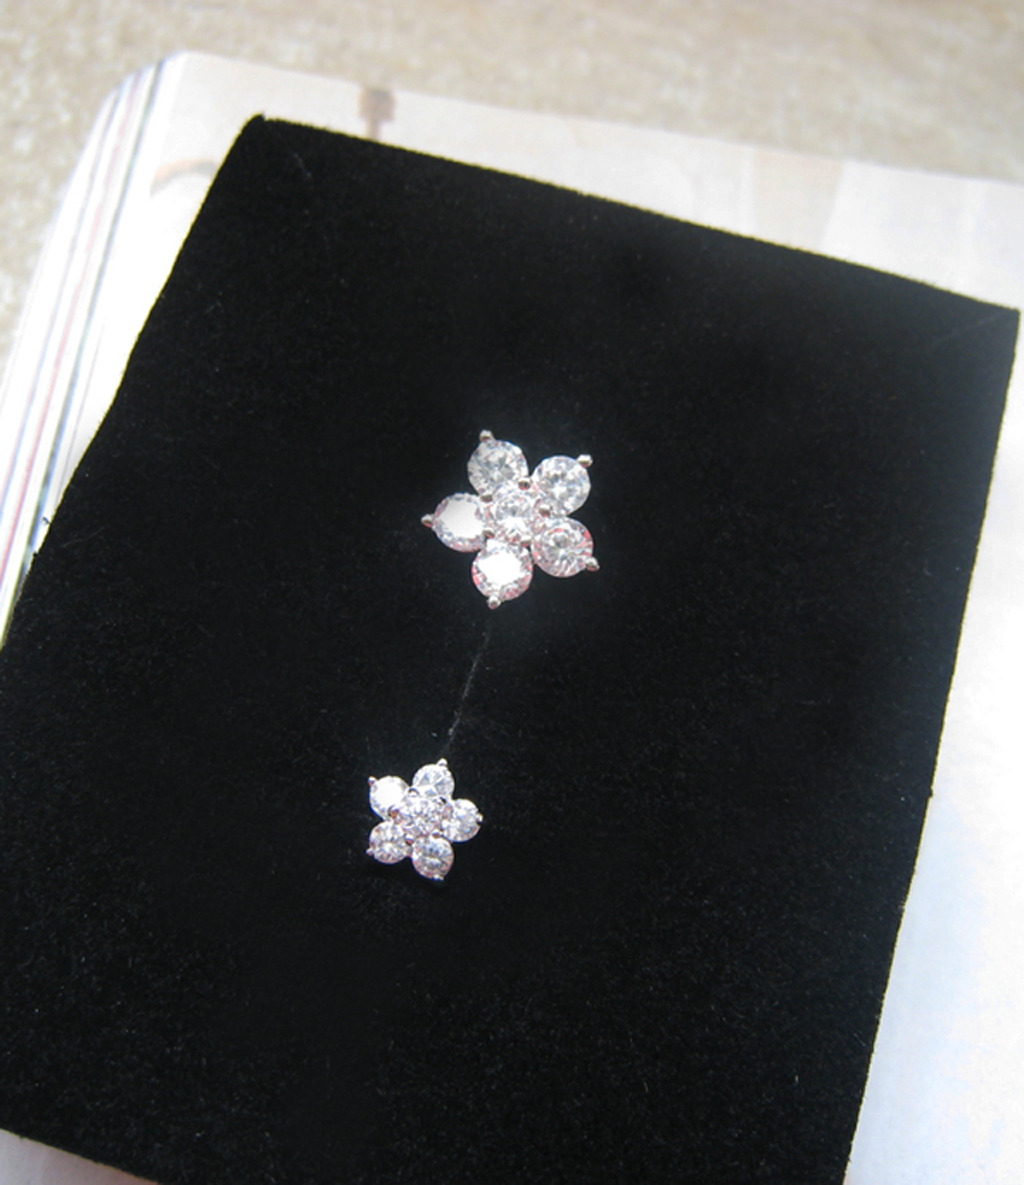 Mini Cherry Blossom White Crystal Studs Earrings. 925 Silver Floral Studs  image 3